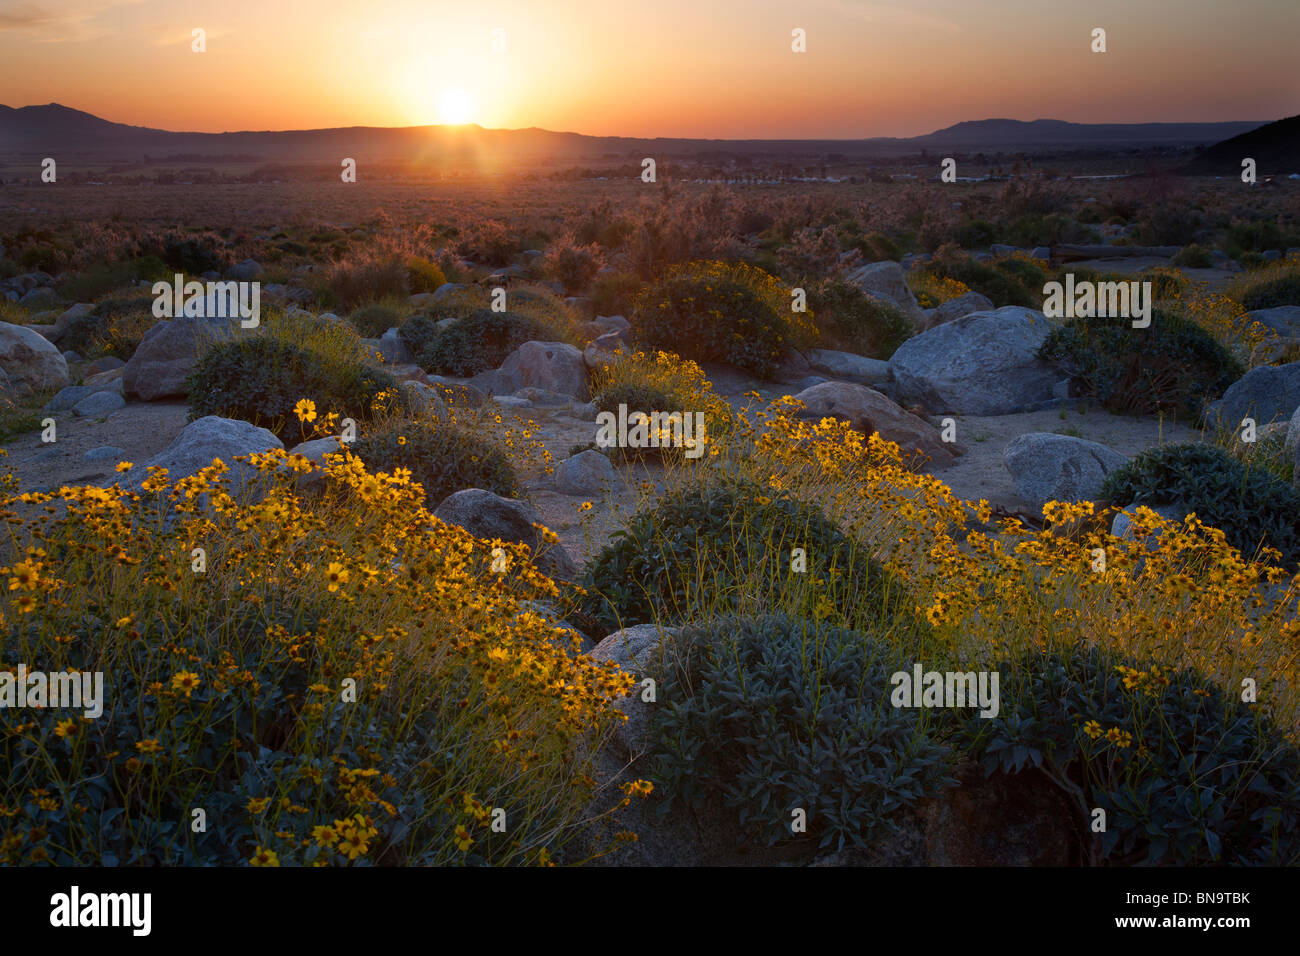 Wildblumen in Borrego Palm Canyon, Anza-Borrego Desert State Park, Kalifornien. Stockbild